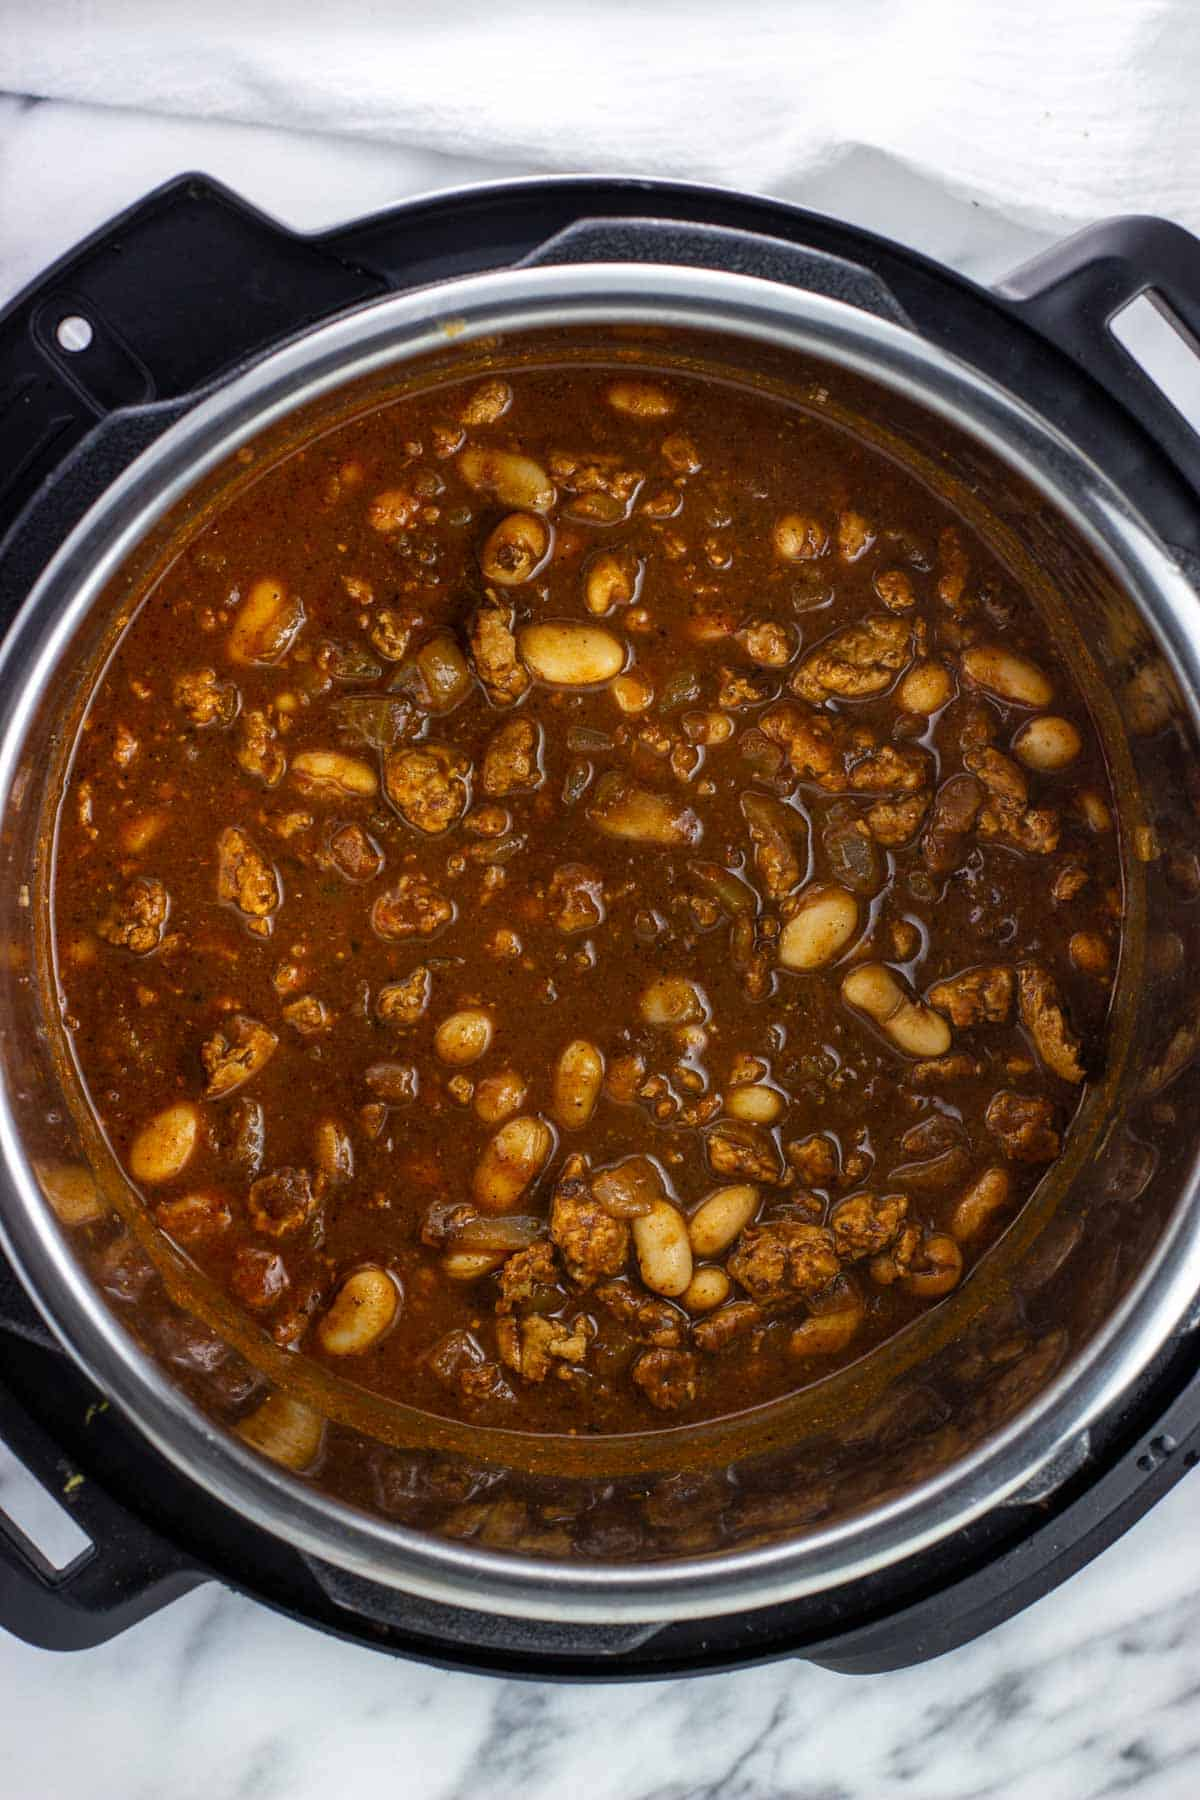 Pumpkin, beans, and Worcestershire stirred into the chili.